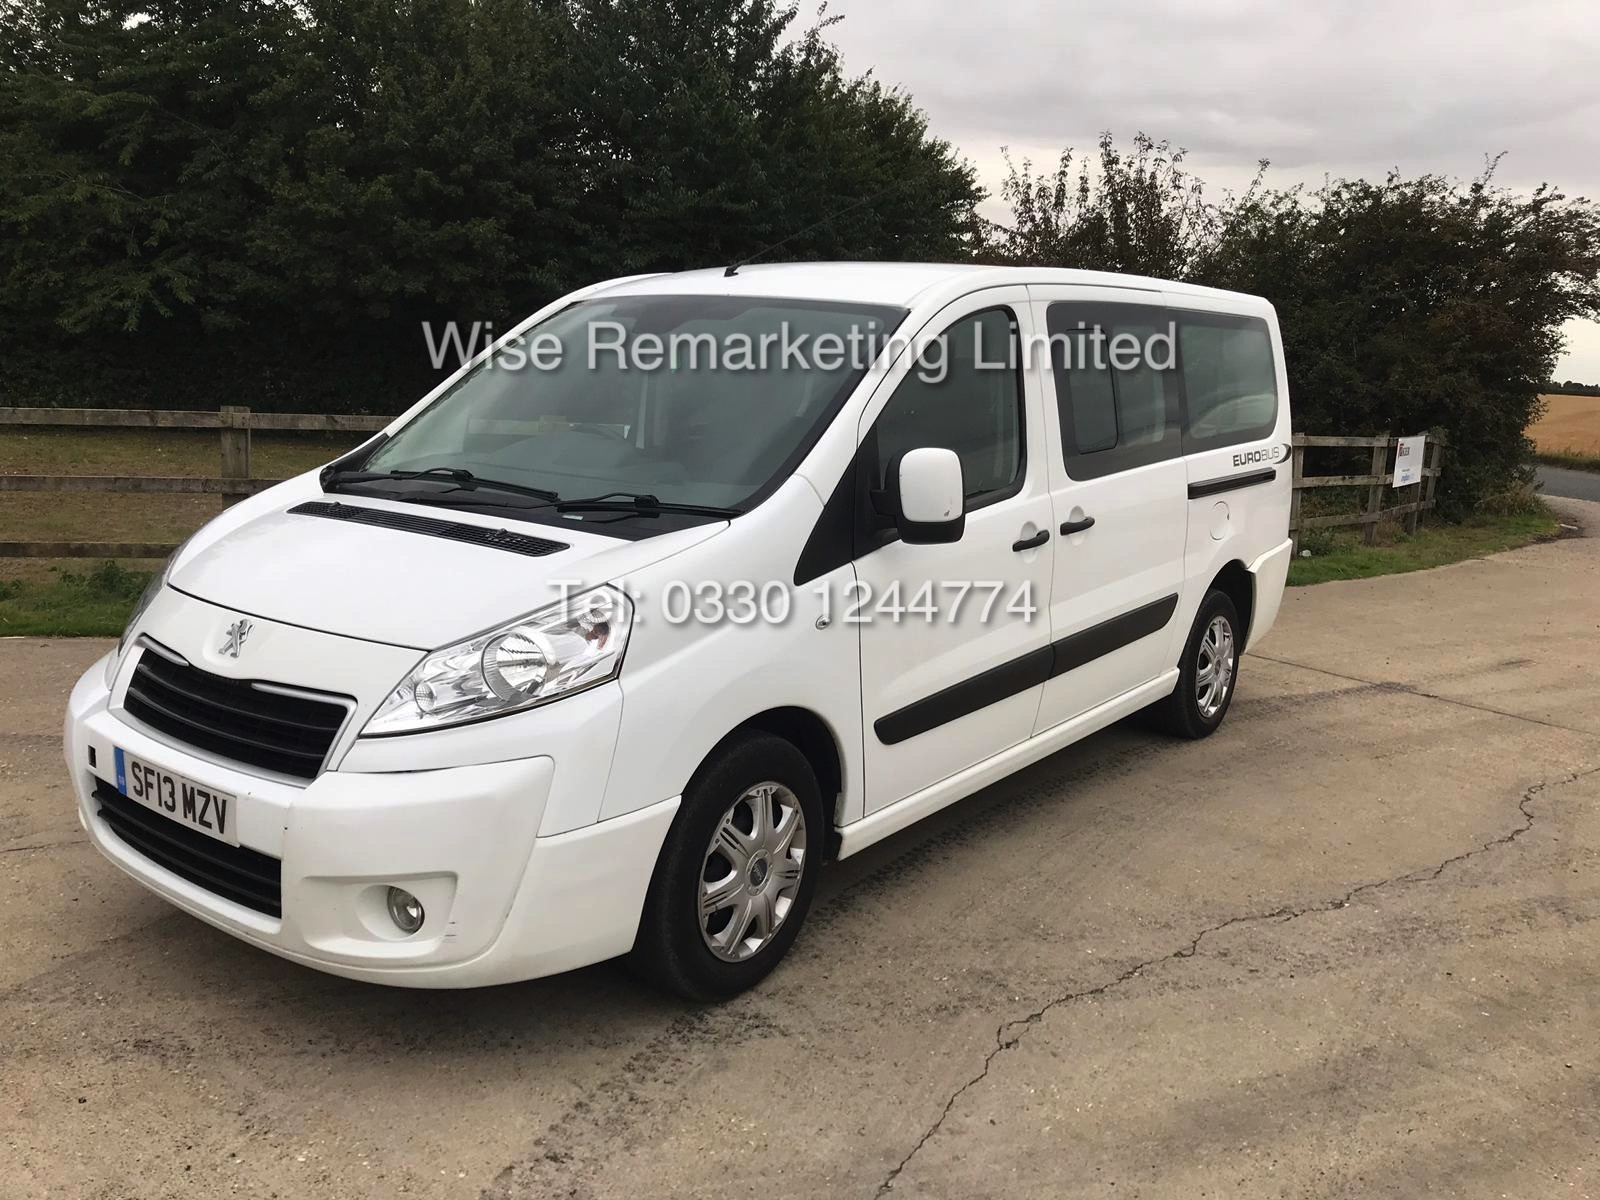 Lot 19 - PEUGEOT EUROBUS S *MPV 8 SEATER* 2.0l (2013 - 13 REG) **AIR CON** - 1 OWNER FROM NEW